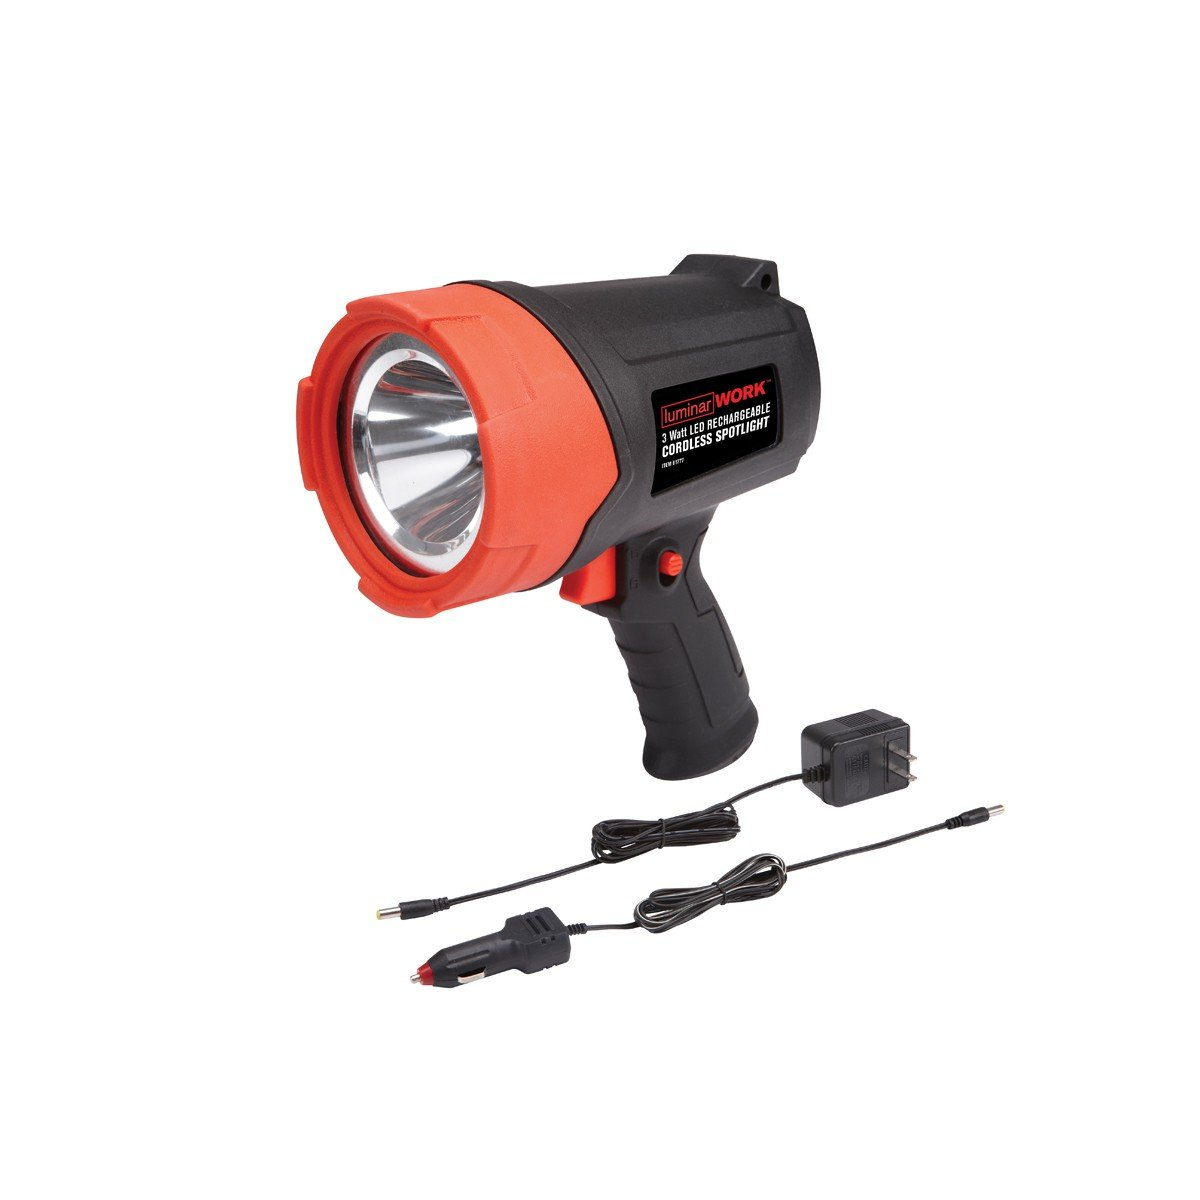 3 Watt LED Rechargeable Cordless Spotlight from TNM